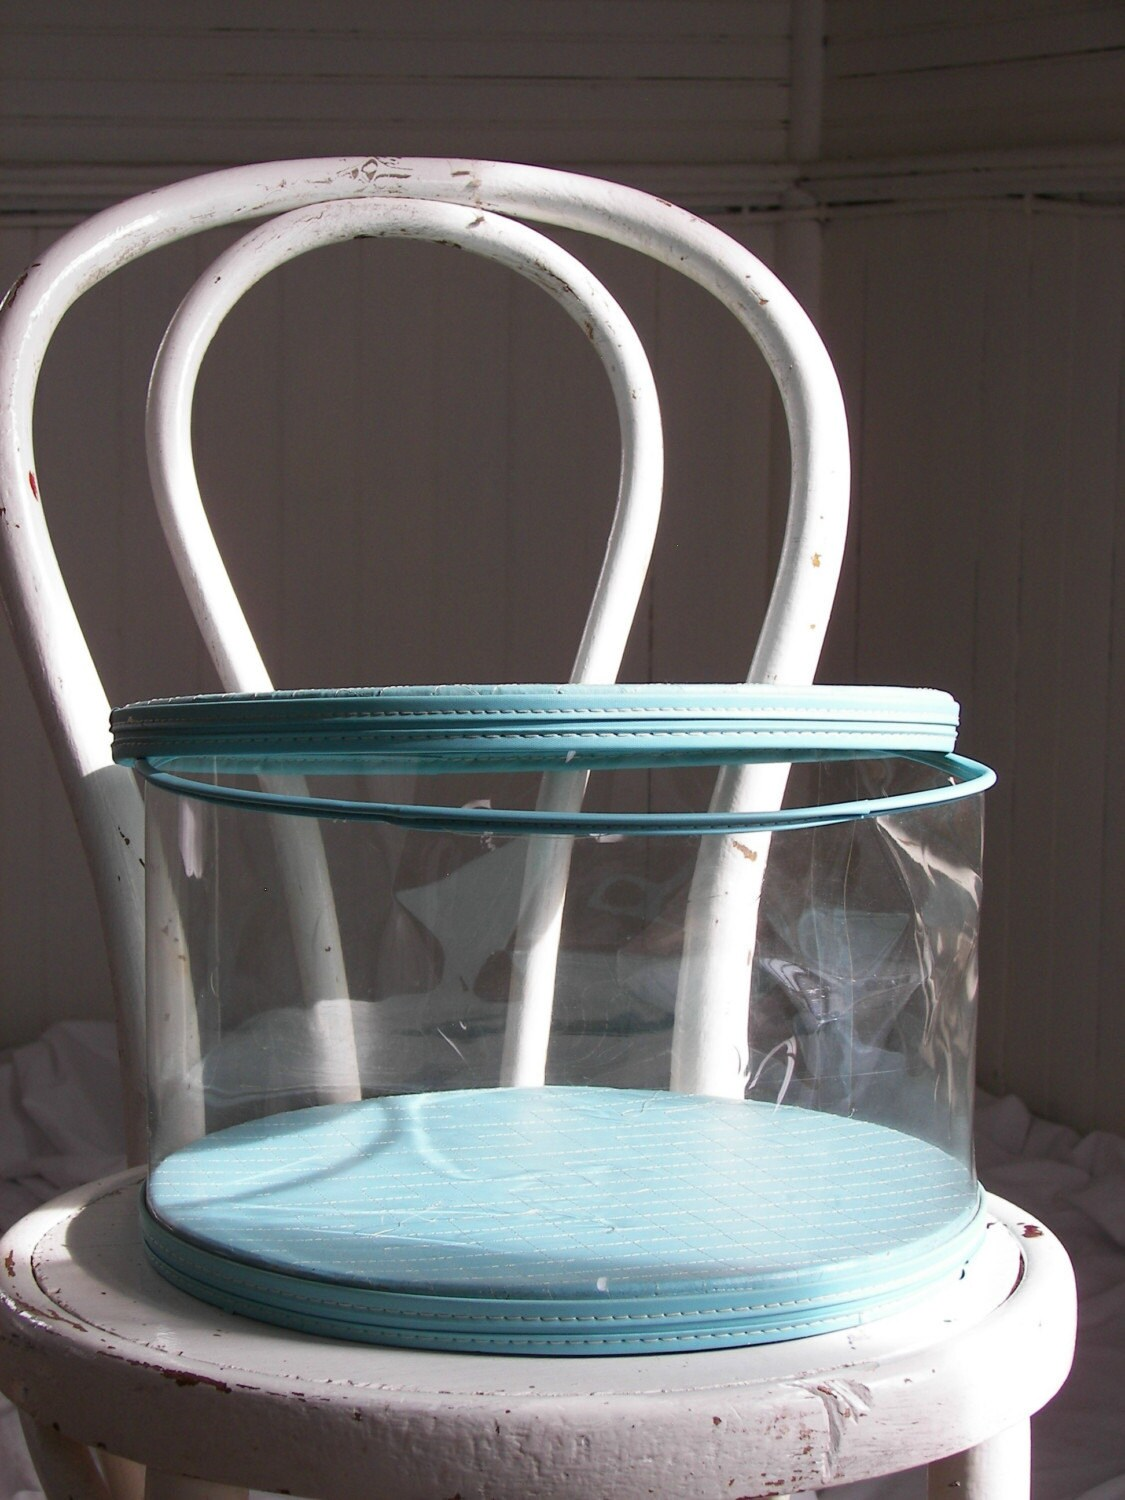 Acrylic Hat Boxes : Items similar to vintage teal and clear plastic wig or hat